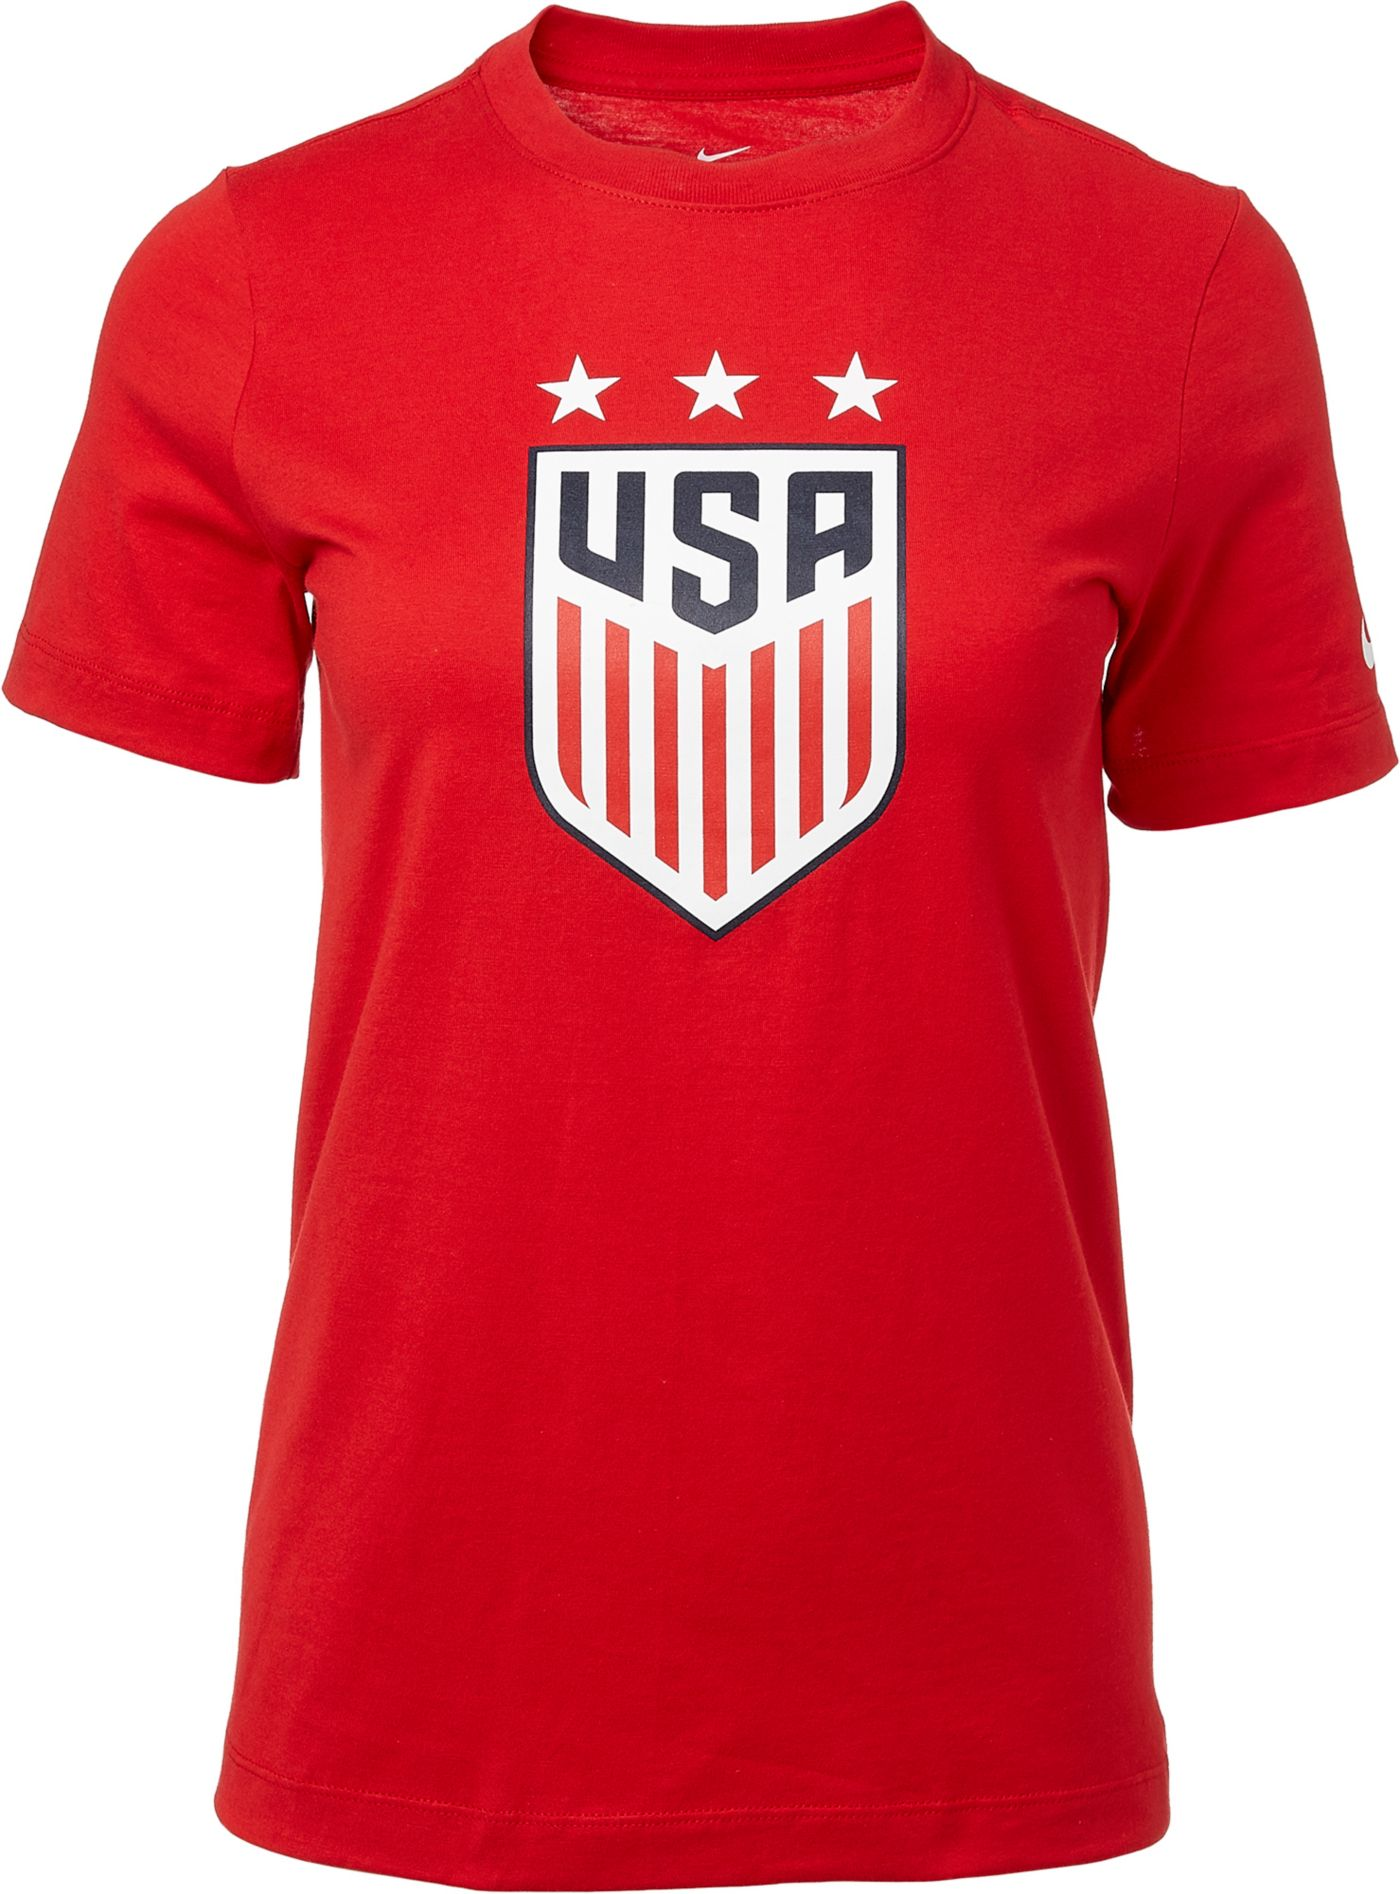 Nike Youth 2019 FIFA Women's World Cup USA Soccer Crest Red T-Shirt